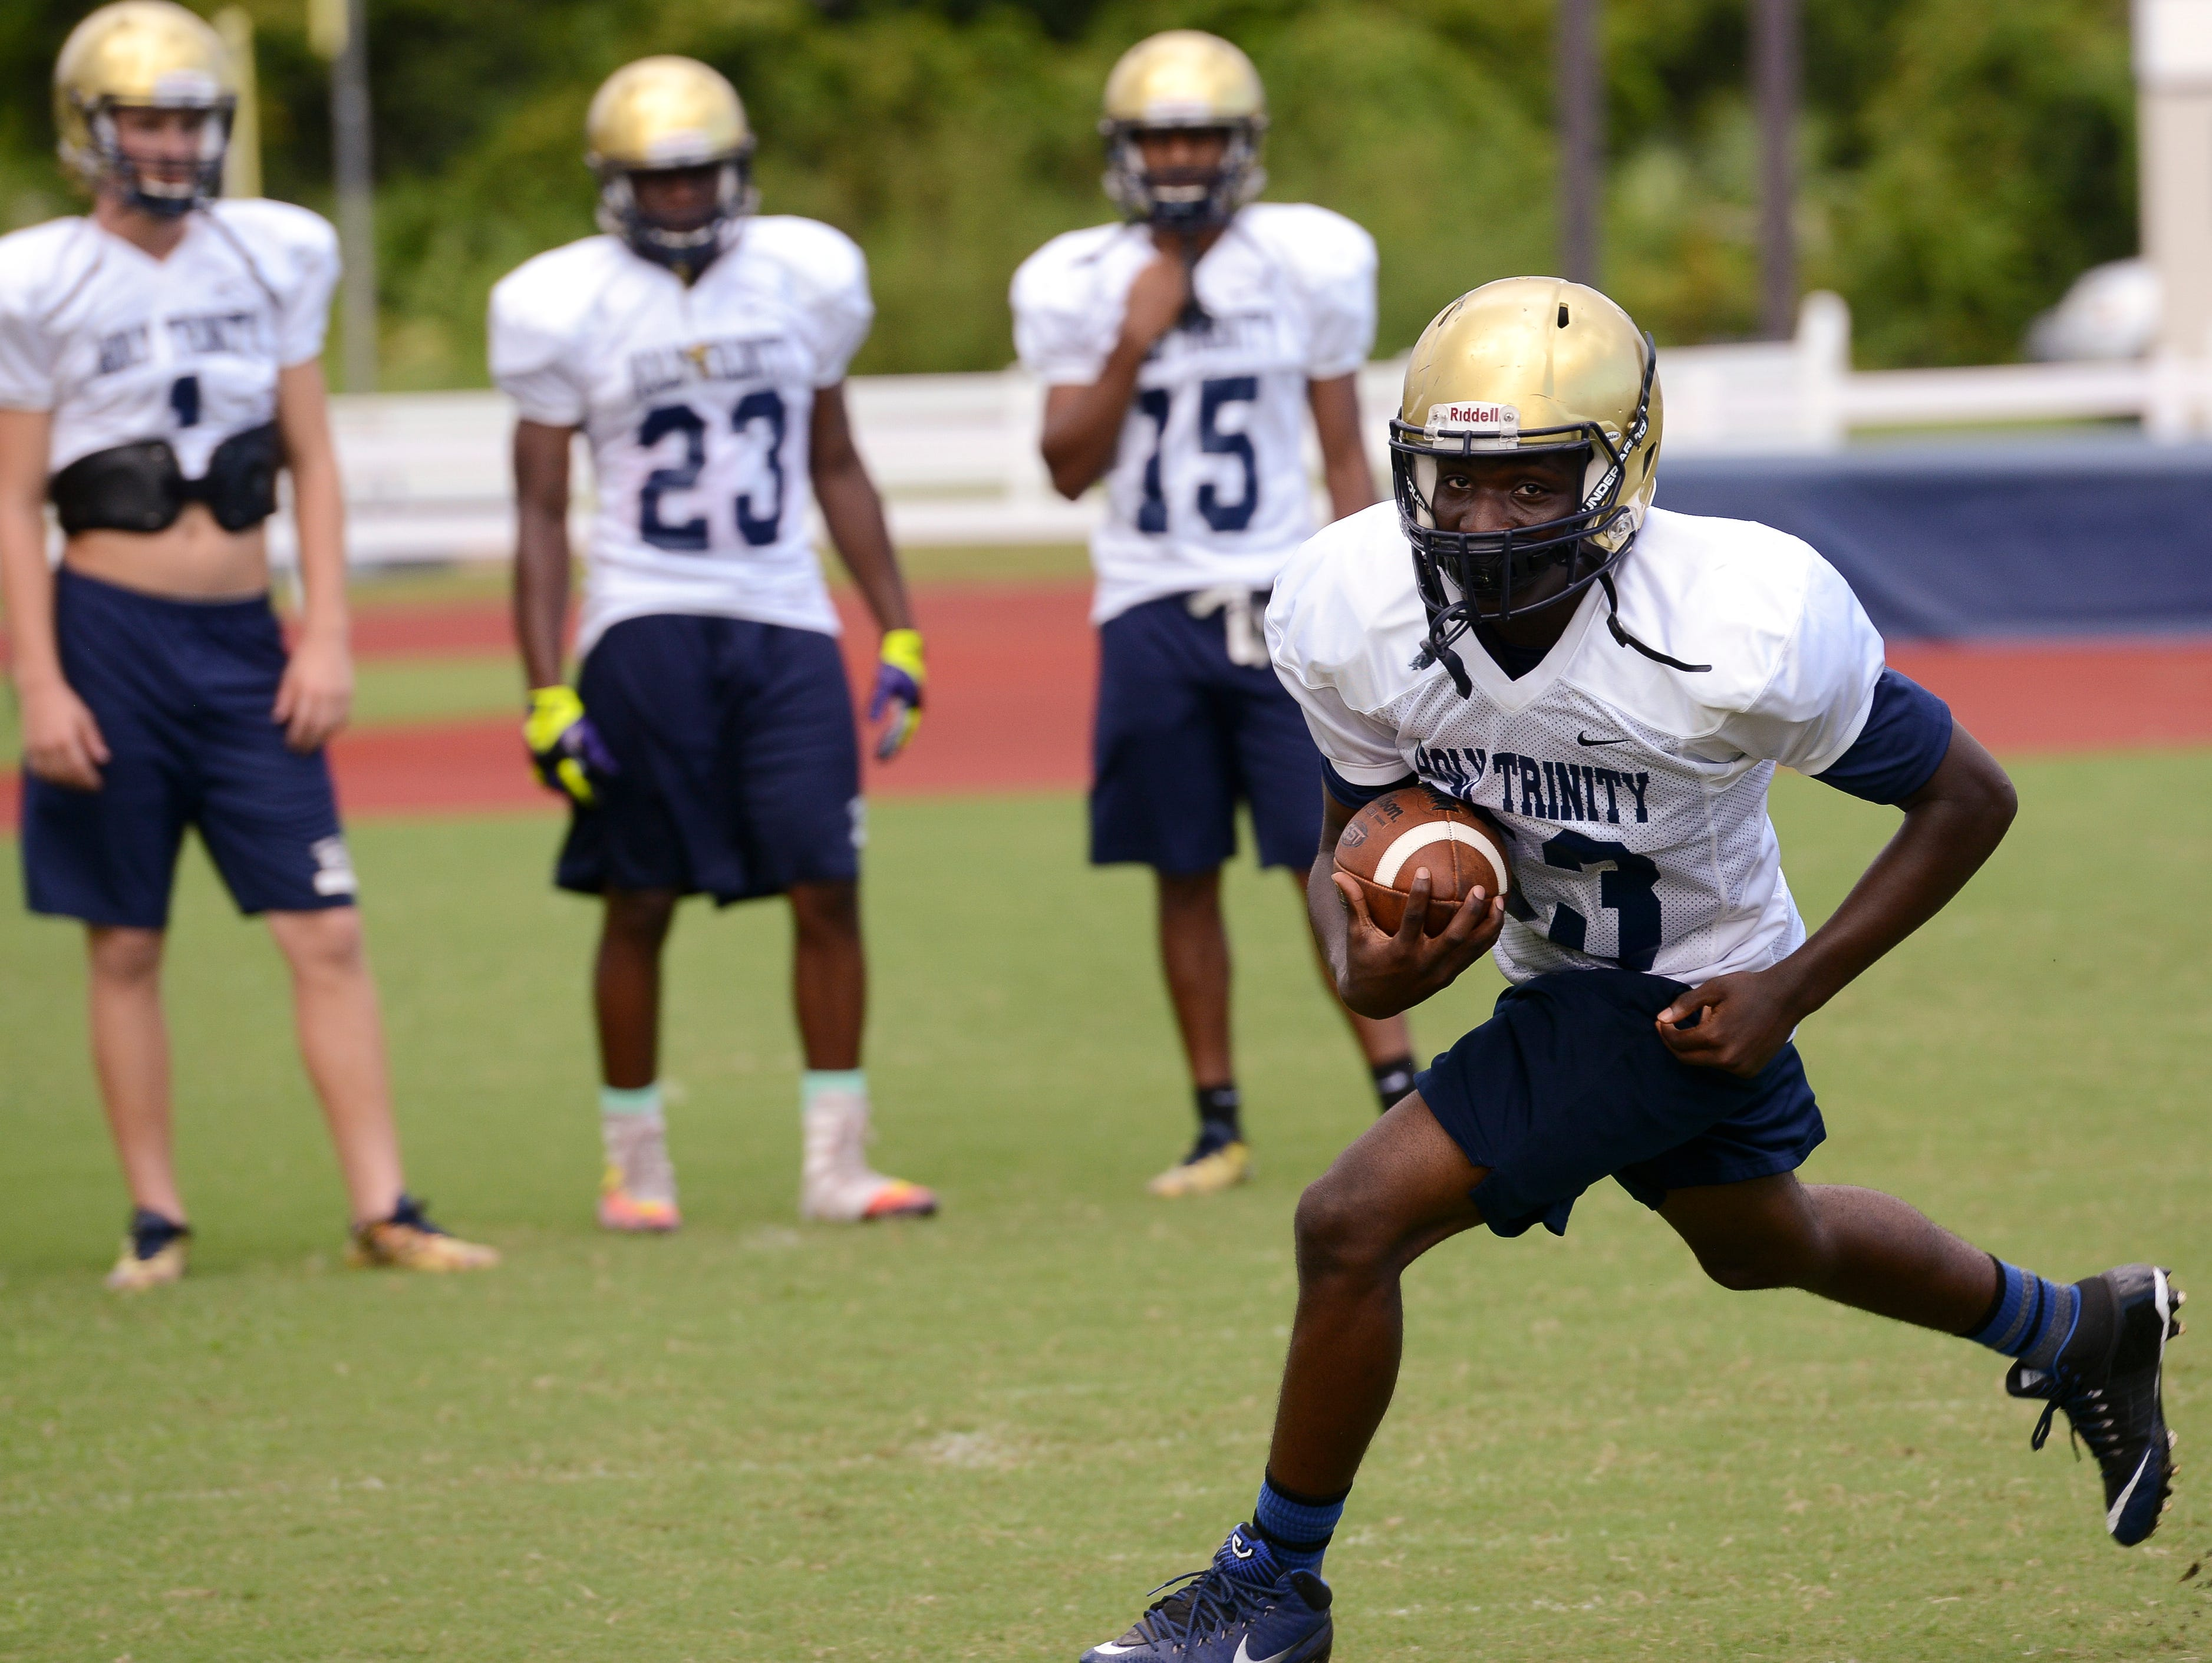 LaAnthony Valentine carries the ball for the Holy Trinity football team in practice. His brother plays at Melbourne Central Catholic.